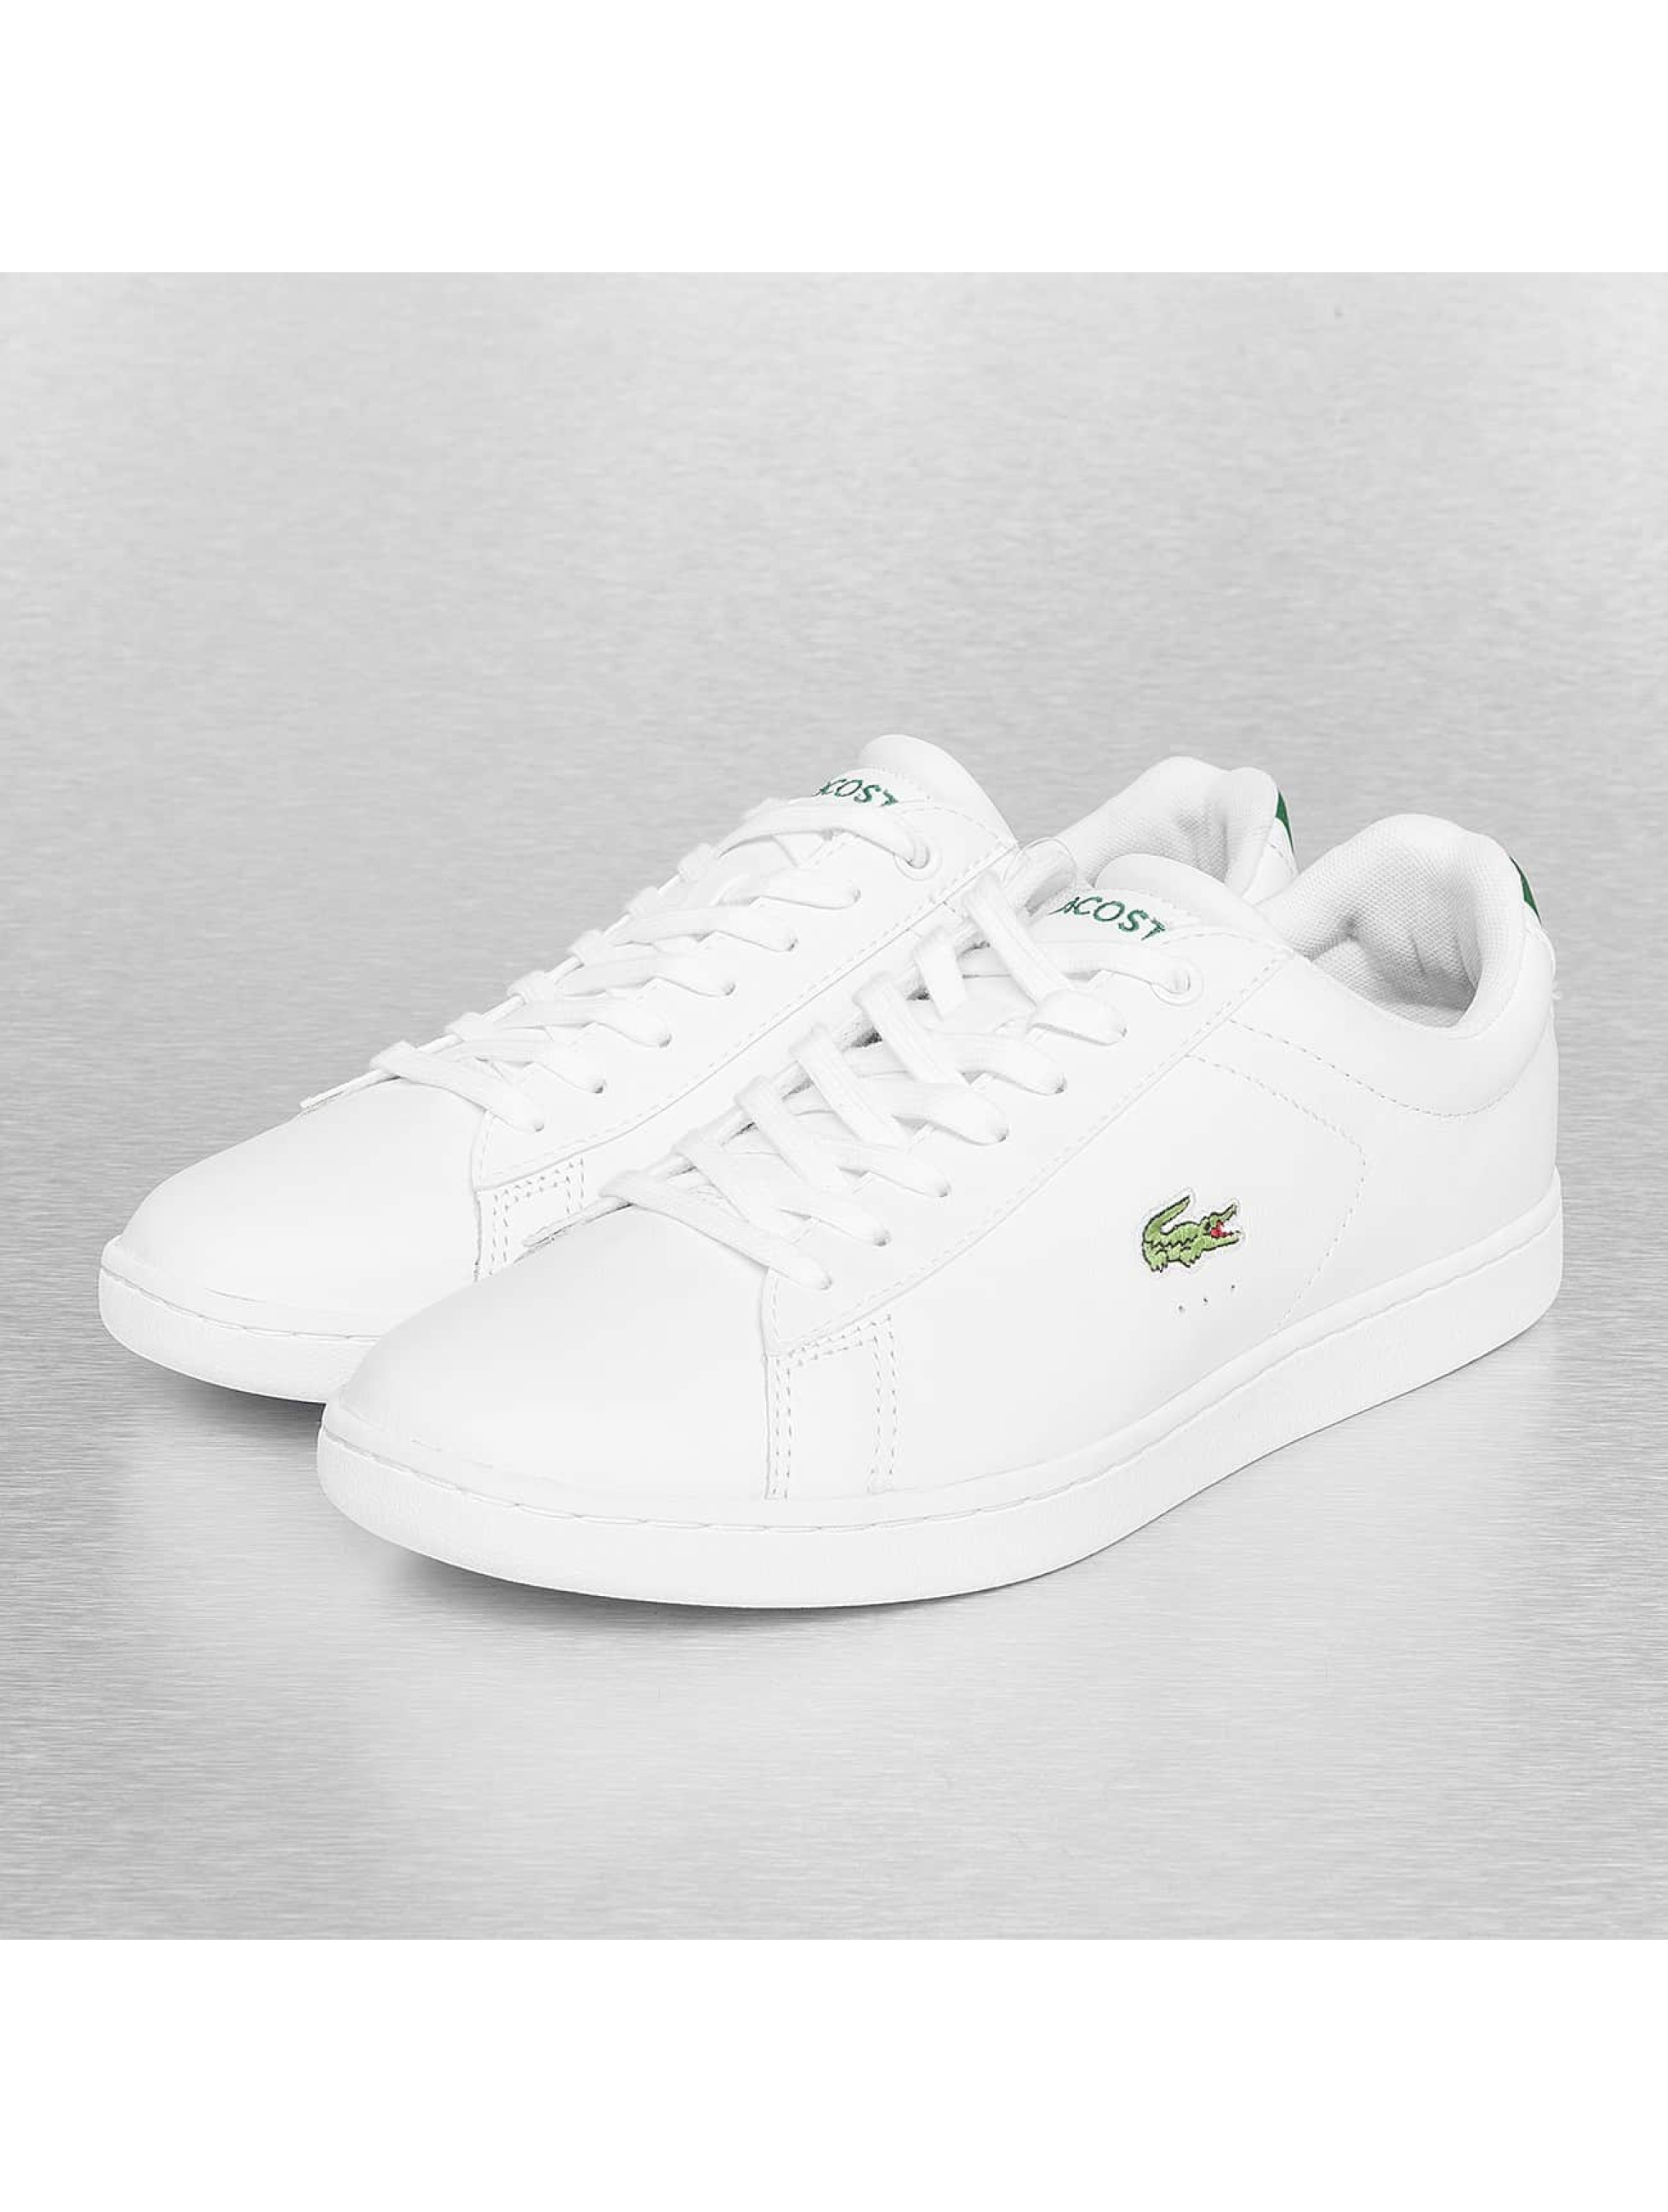 lacoste homme chaussures baskets carnaby evo s216. Black Bedroom Furniture Sets. Home Design Ideas